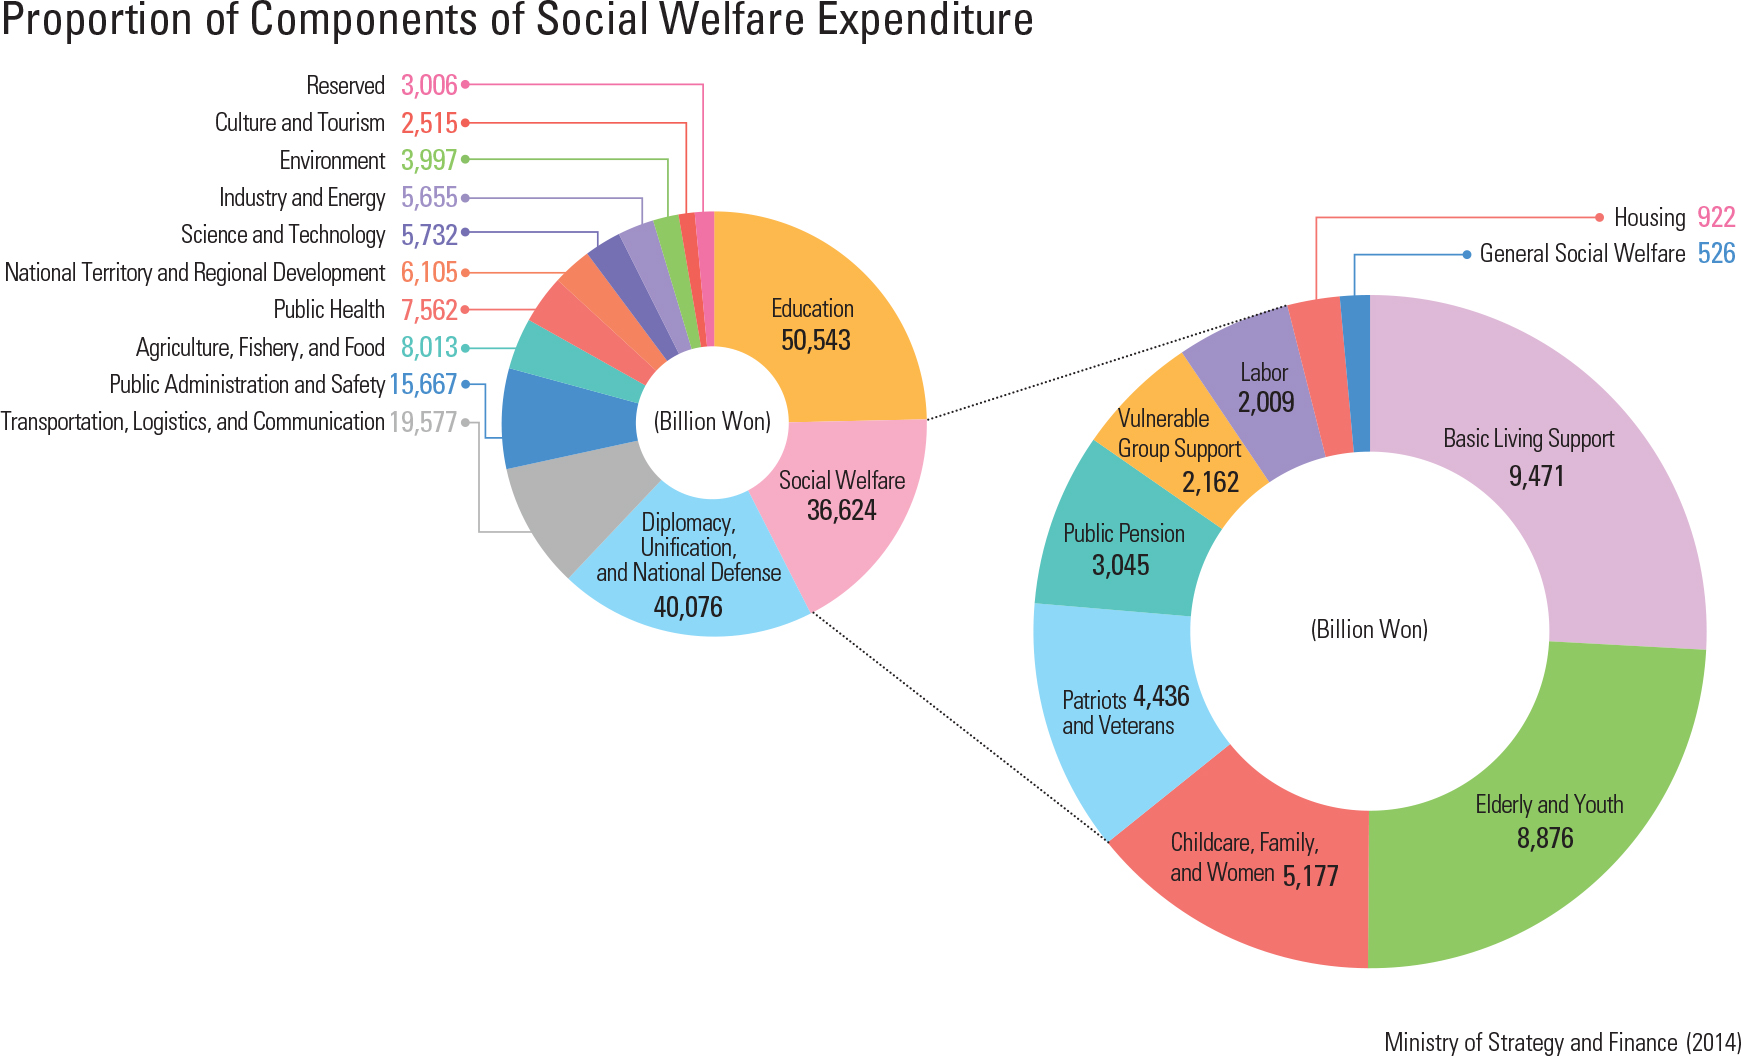 Proportion of Components of Social Welfare Expenditure